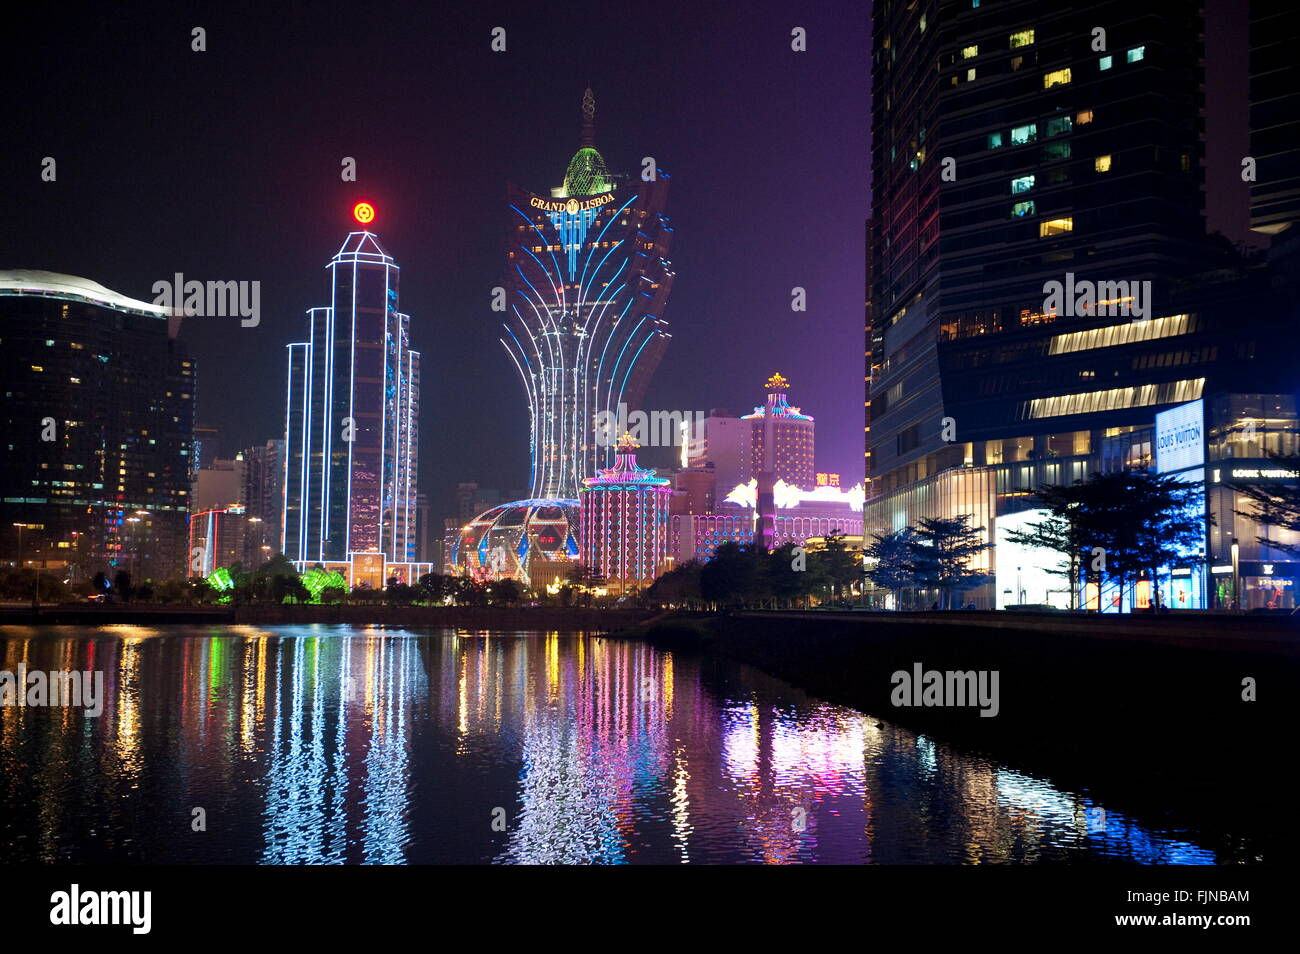 Geographie/Reisen, China, Macao, casino, Grand Lisboa, Additional-Rights - Clearance-Info - Not-Available Stockbild